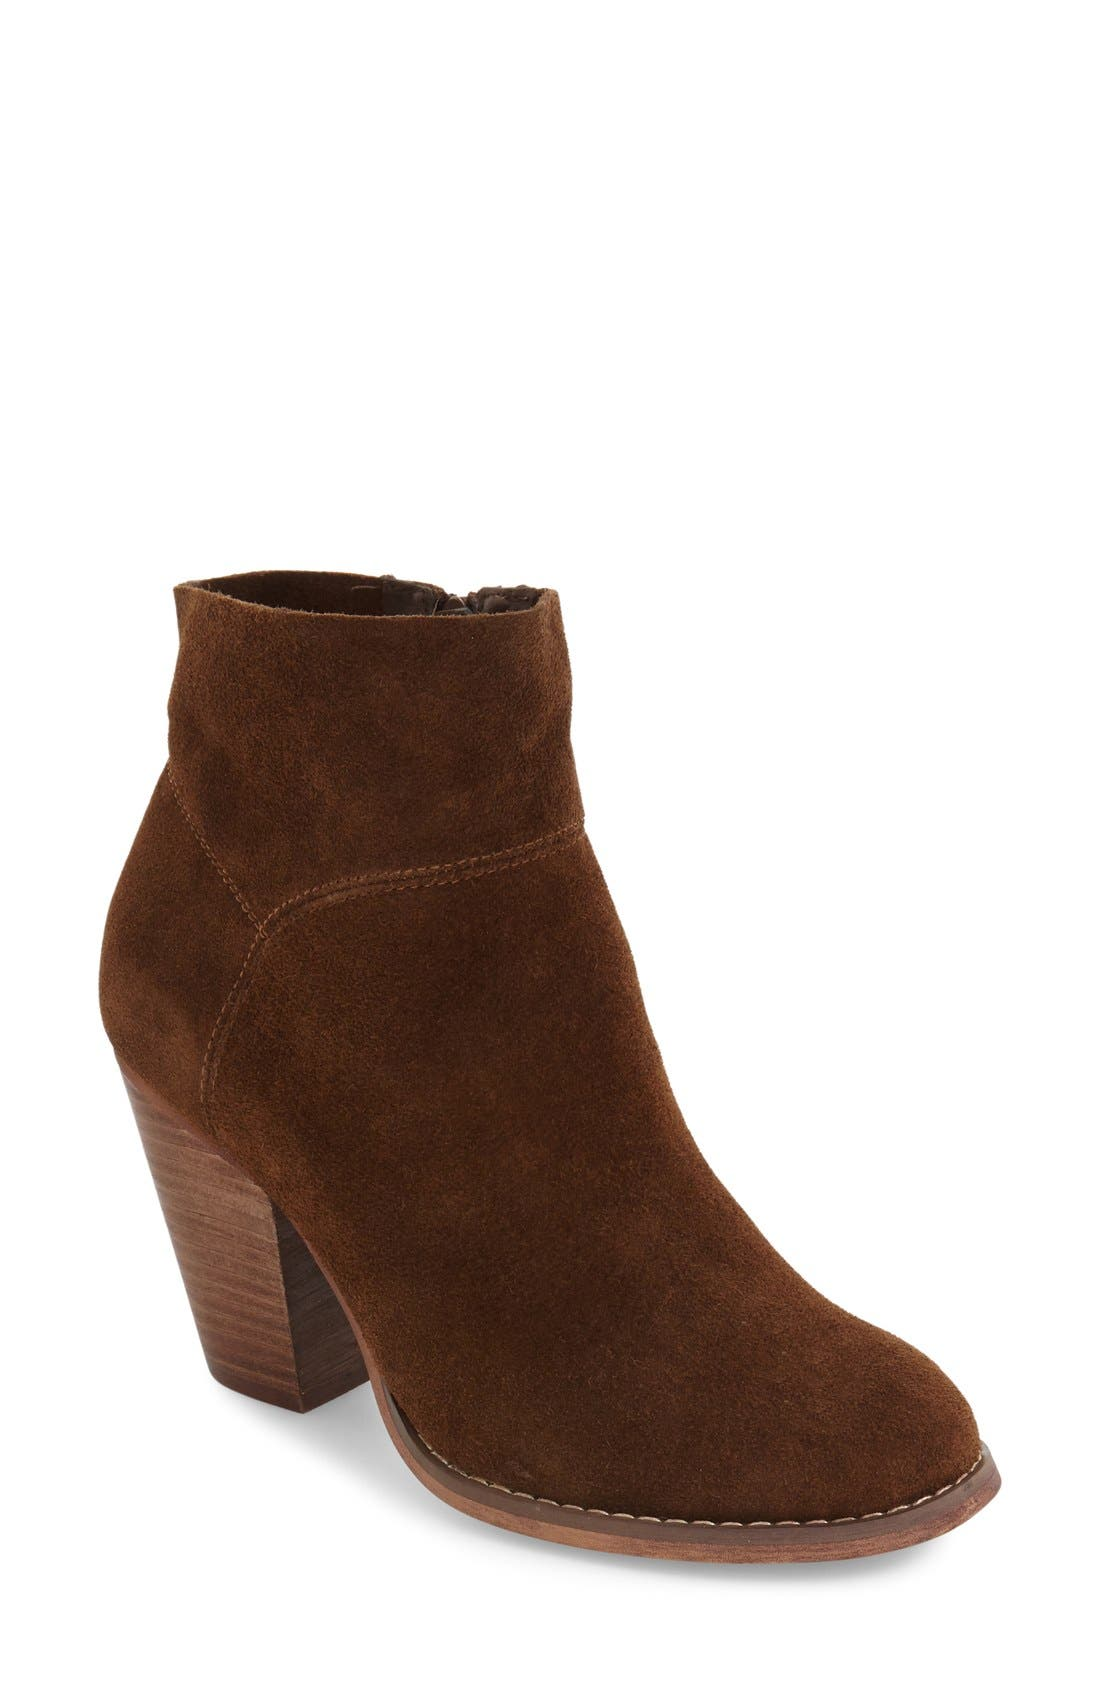 Main Image - Sole Society Alexi Bootie (Women)